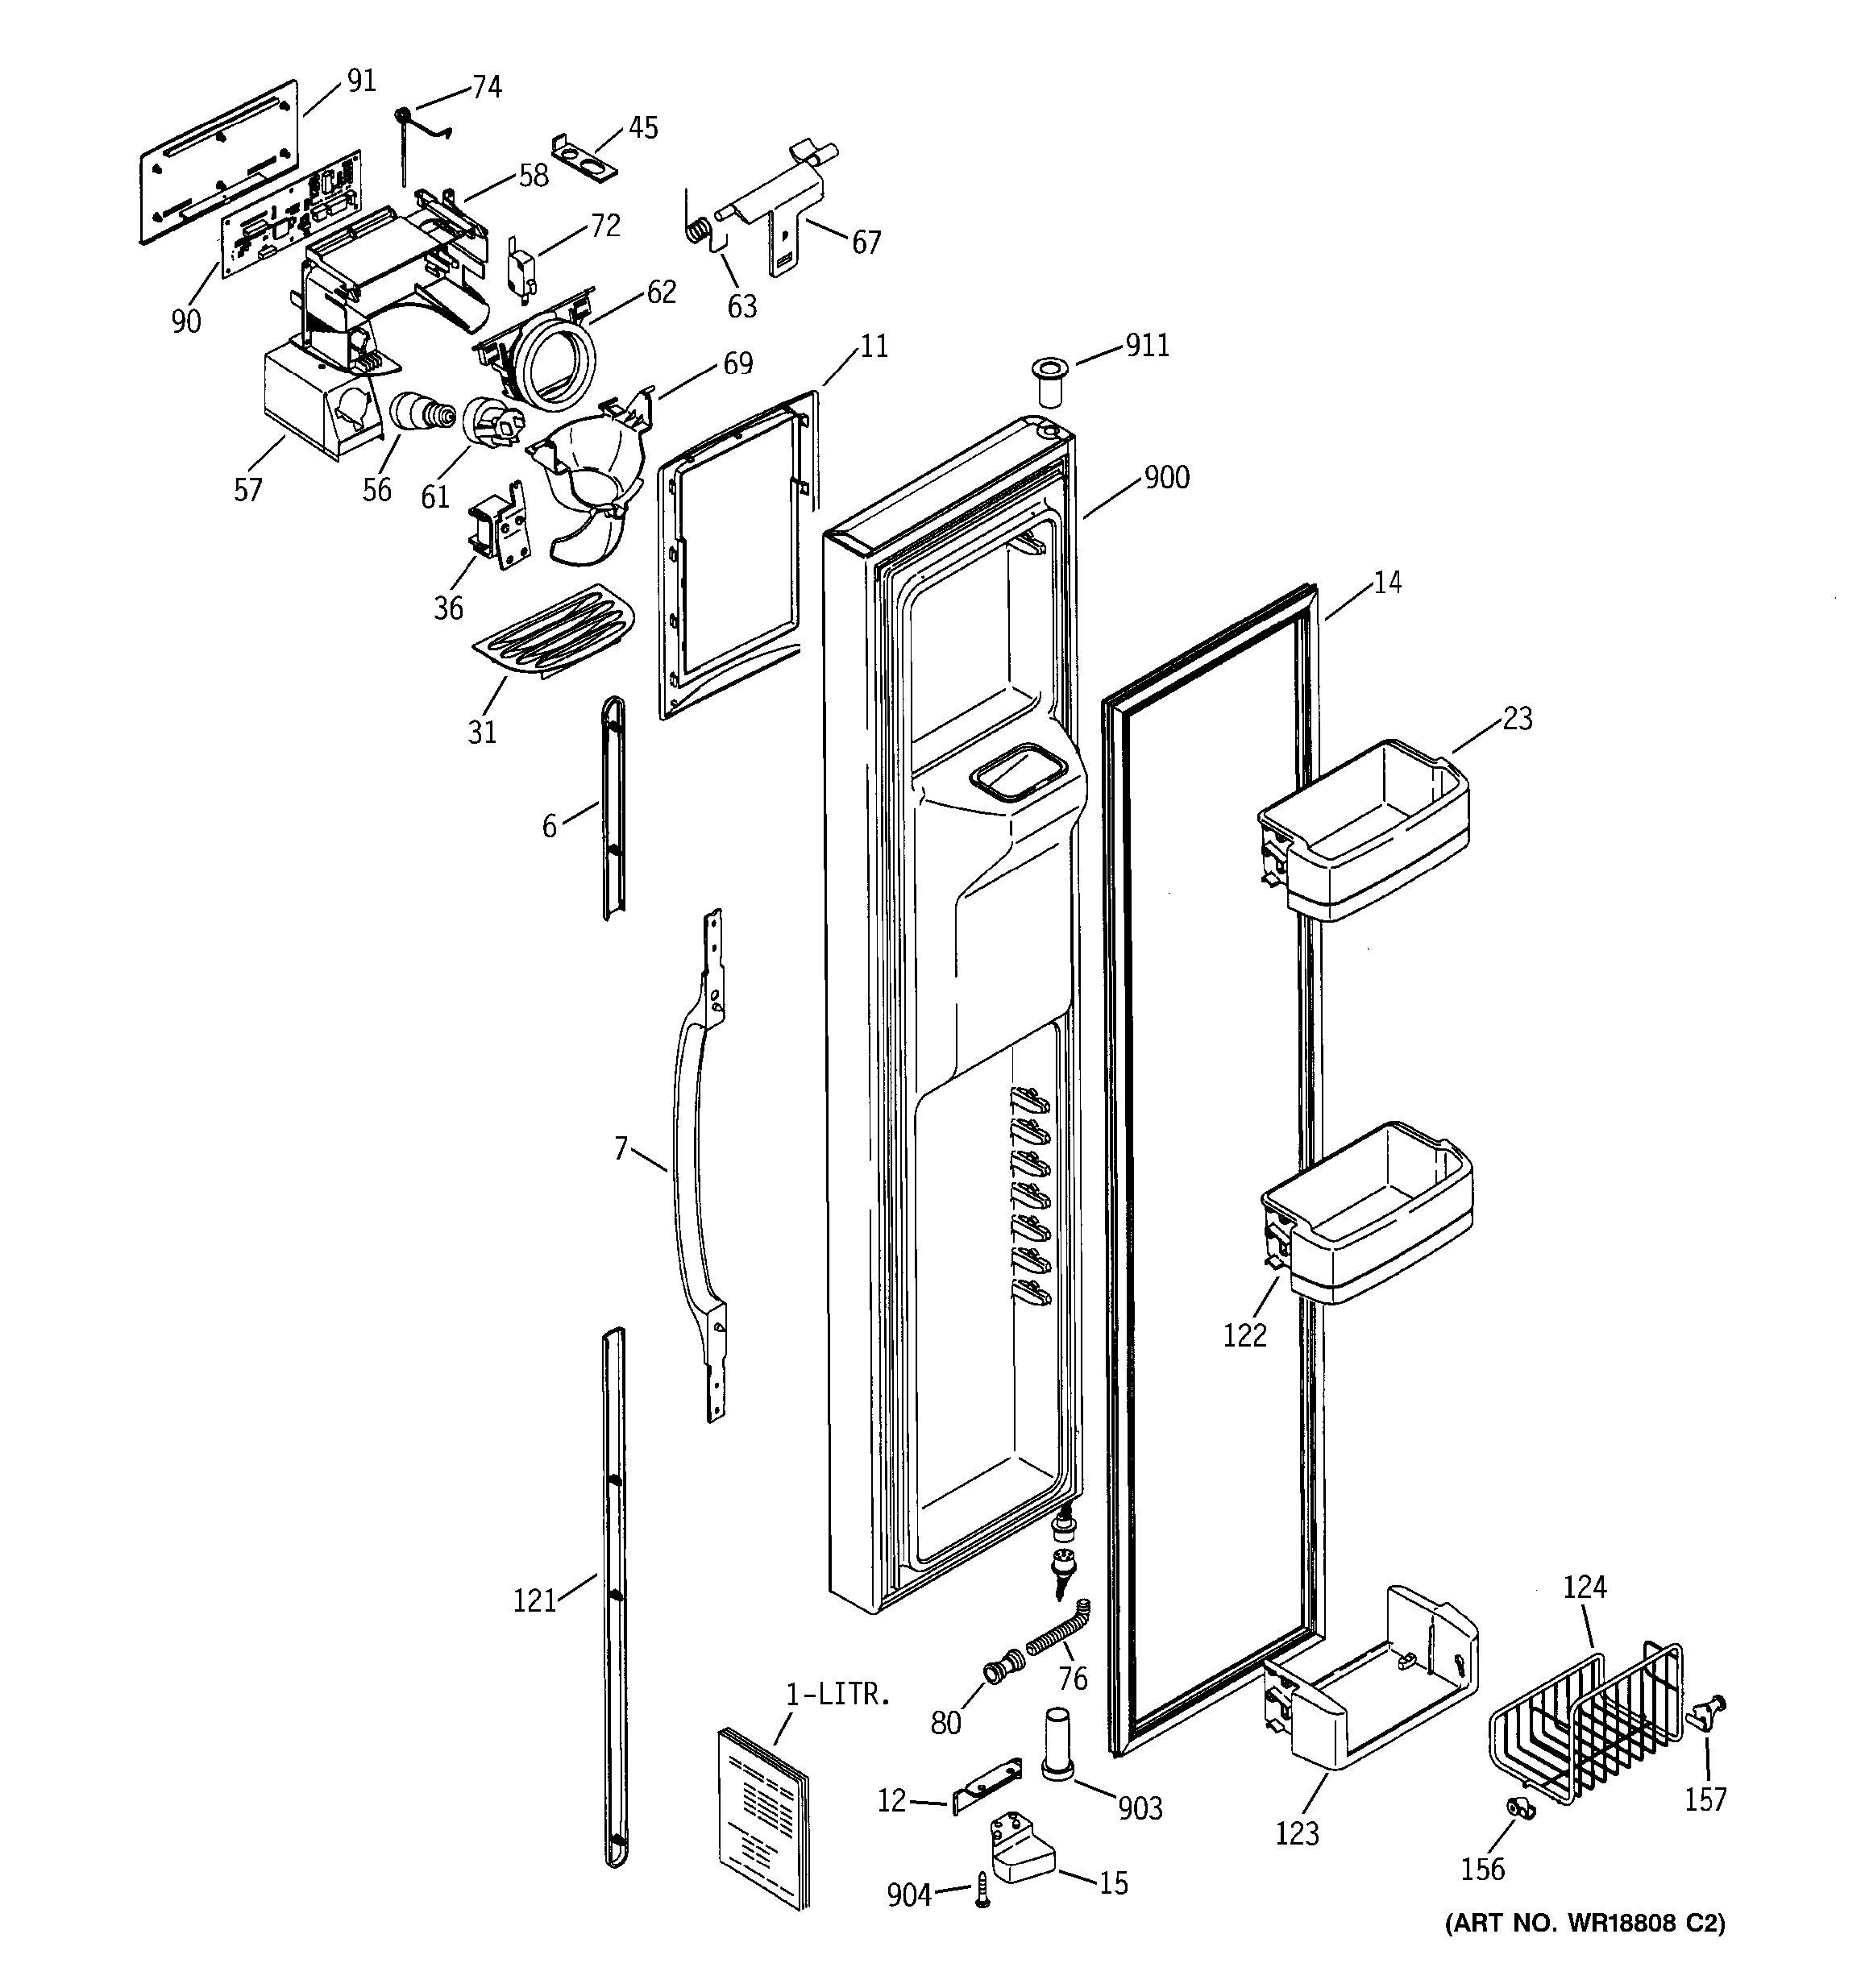 Assembly View For Freezer Door Gss25lgmacc